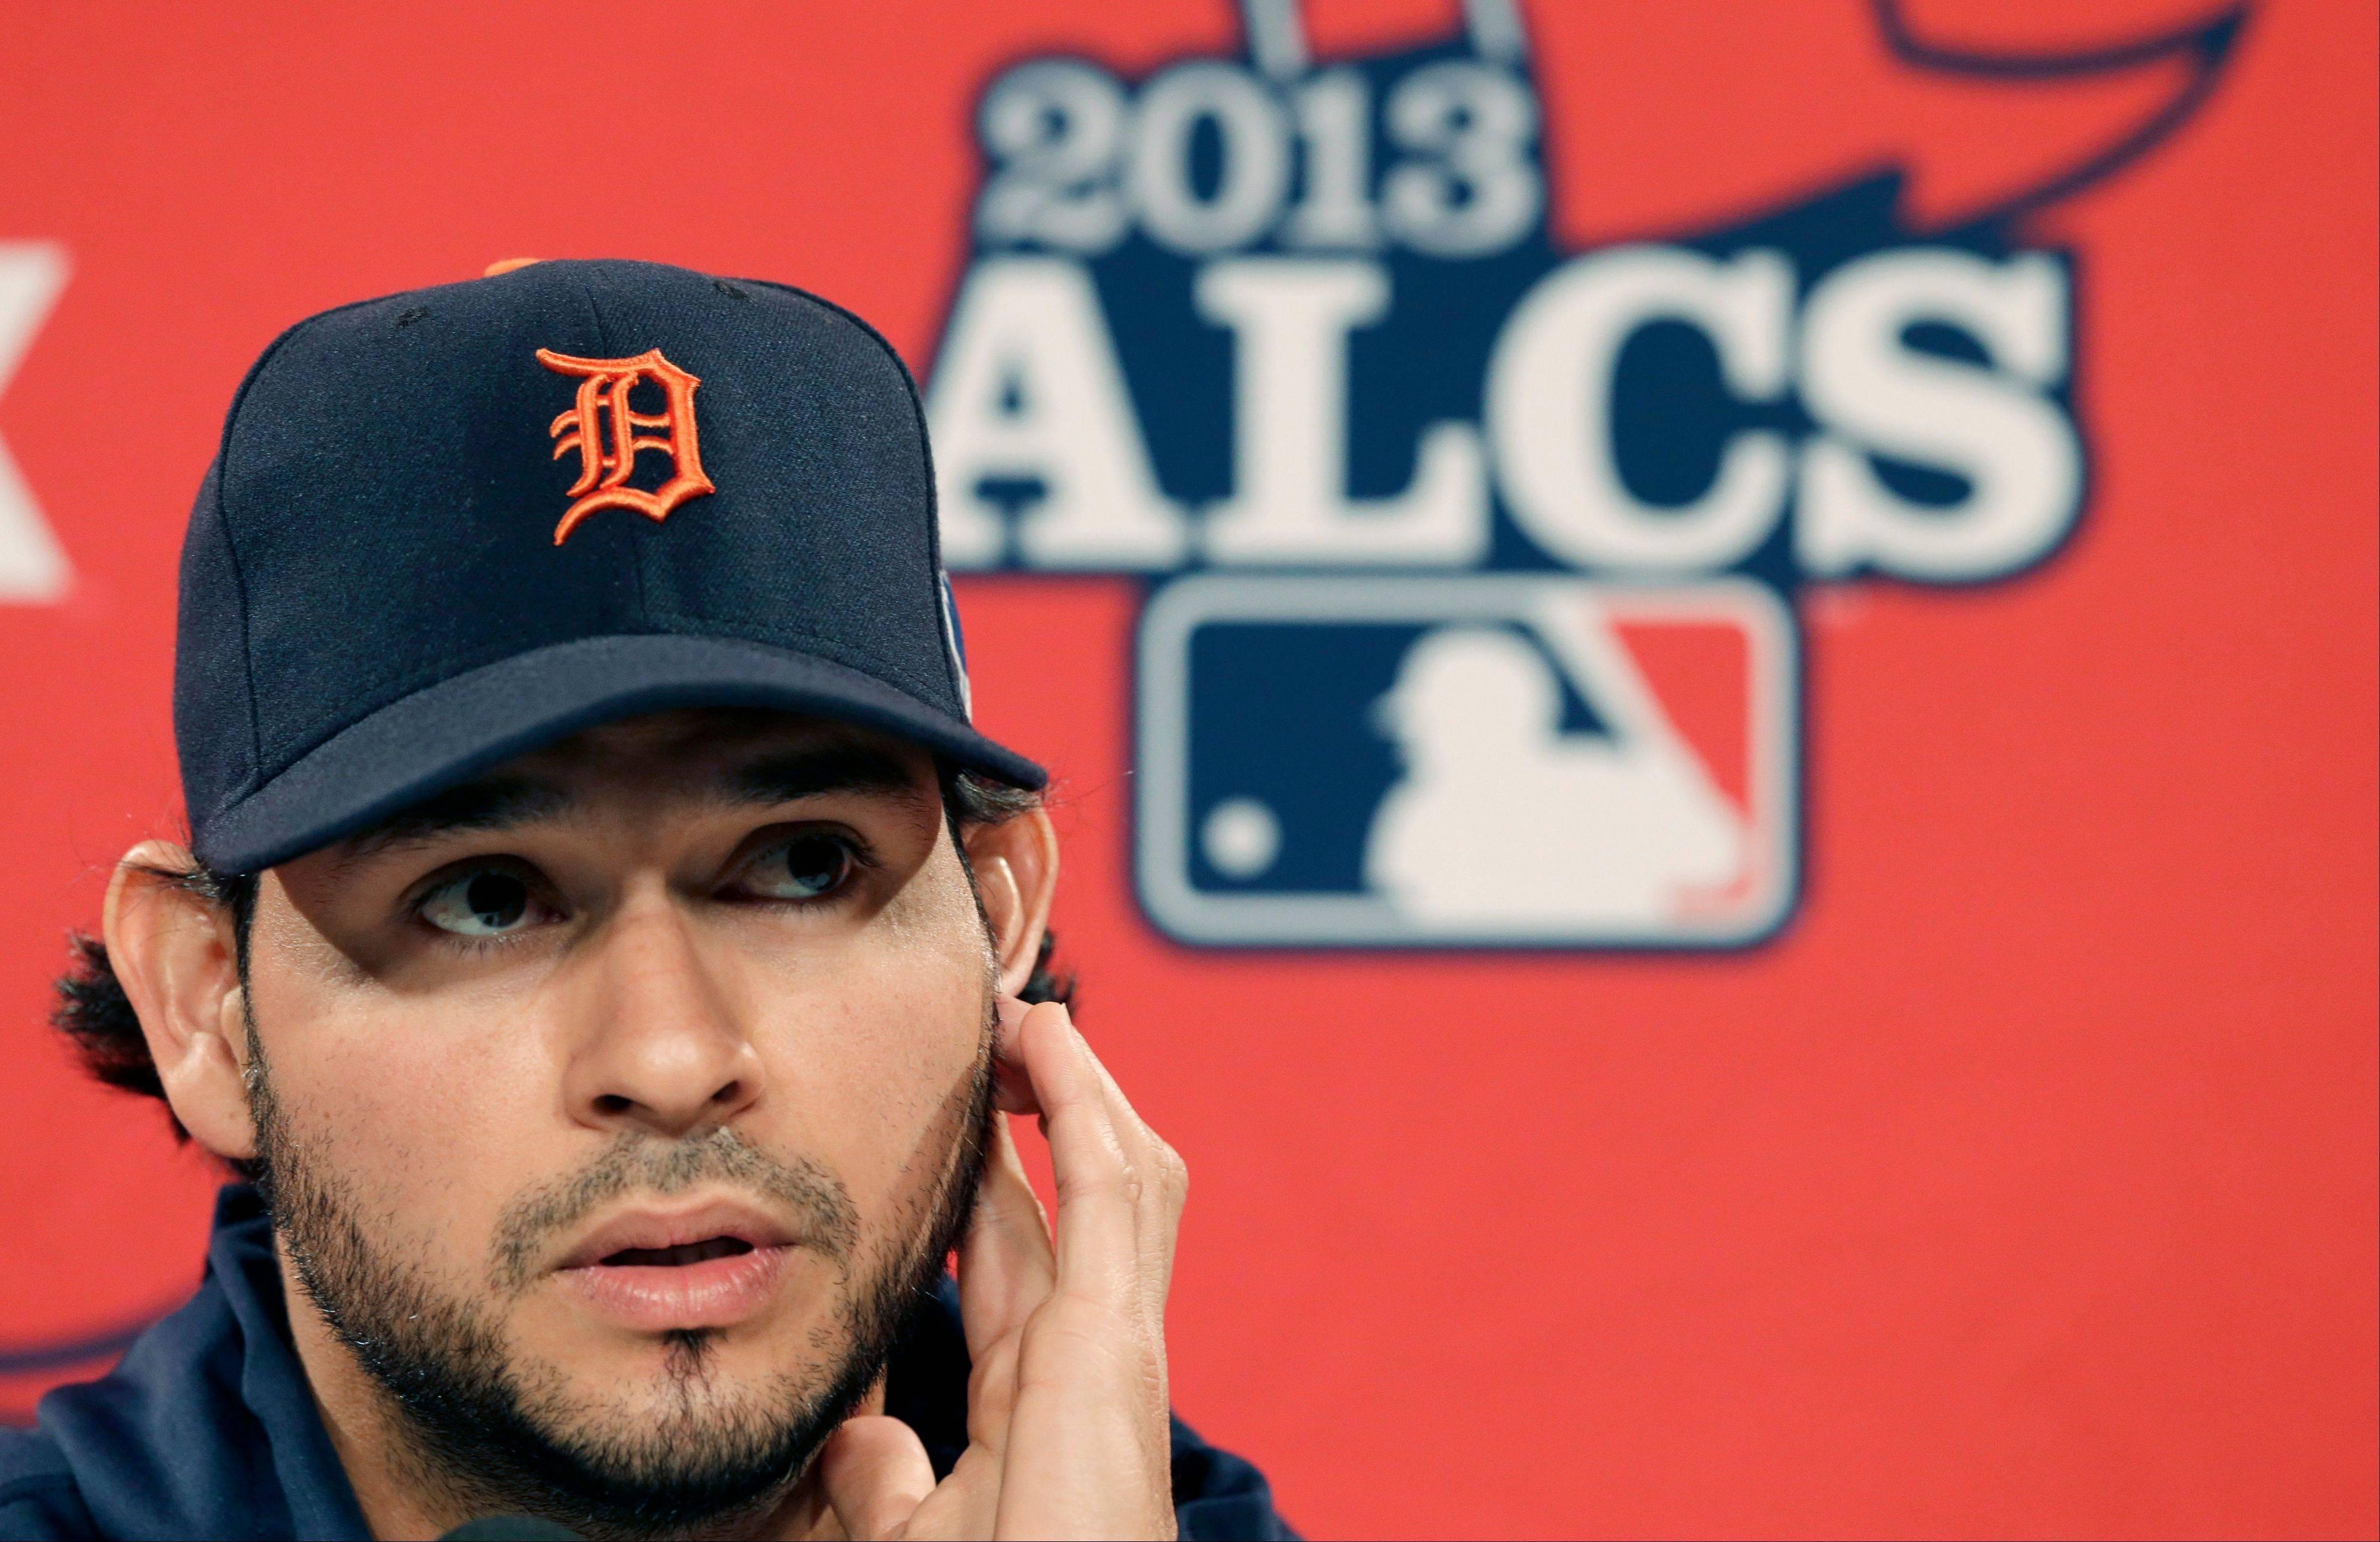 Detroit pitcher Anibal Sanchez, led the AL with a 2.57 ERA, will start in Game 1 of the ALCS against Boston on Saturday.